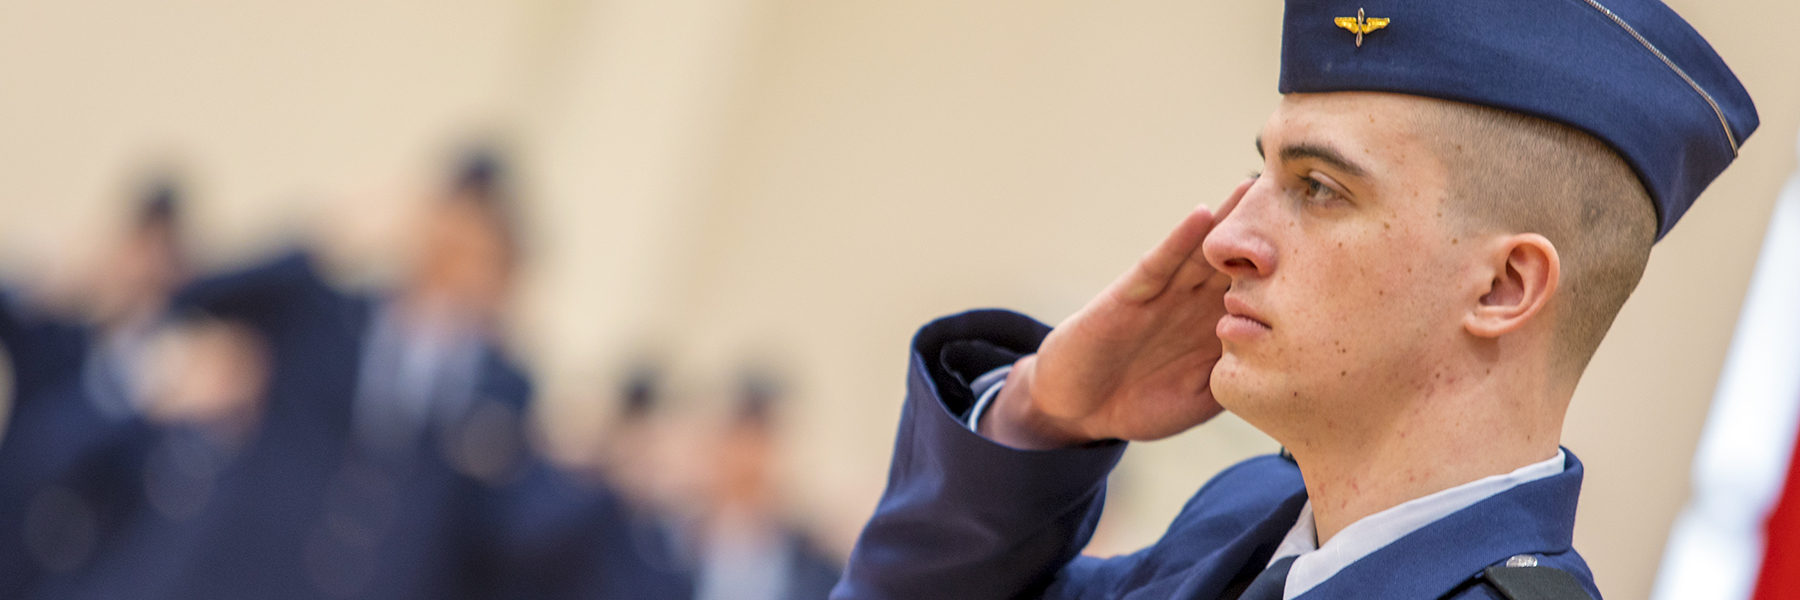 Air Force ROTC cadet saluting during ceremony.